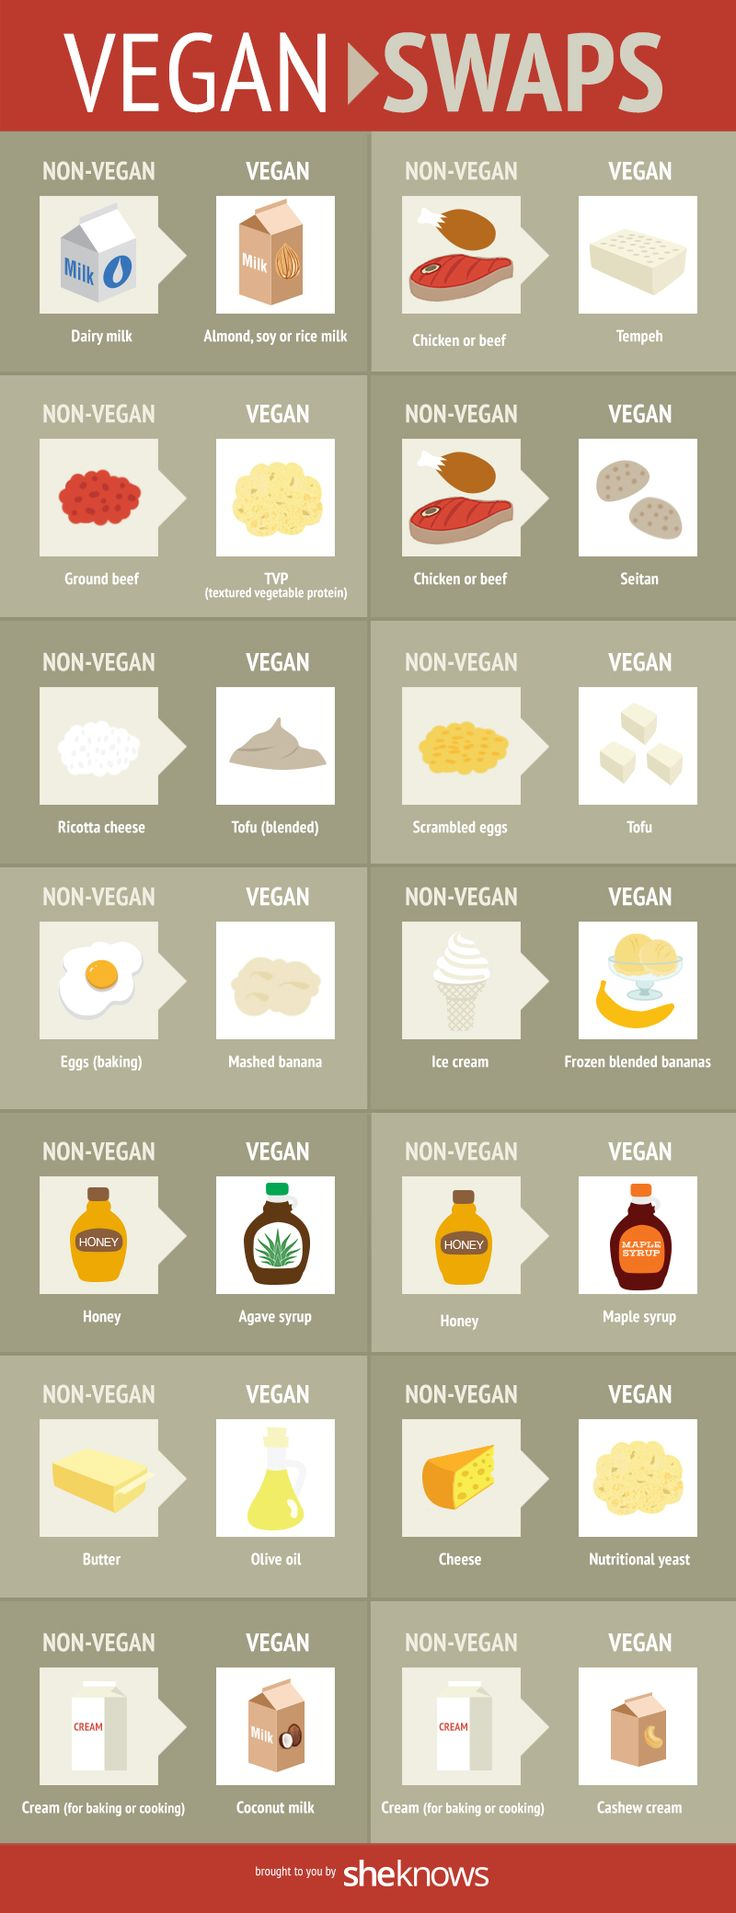 14 Simple ingredient swaps for a tasty vegan menu. - For Vegan Recipes & Cookbook go to---> http://www.dawnali.com/beauty-weight-loss-meal-plan/ #dawnali Dawn Ali